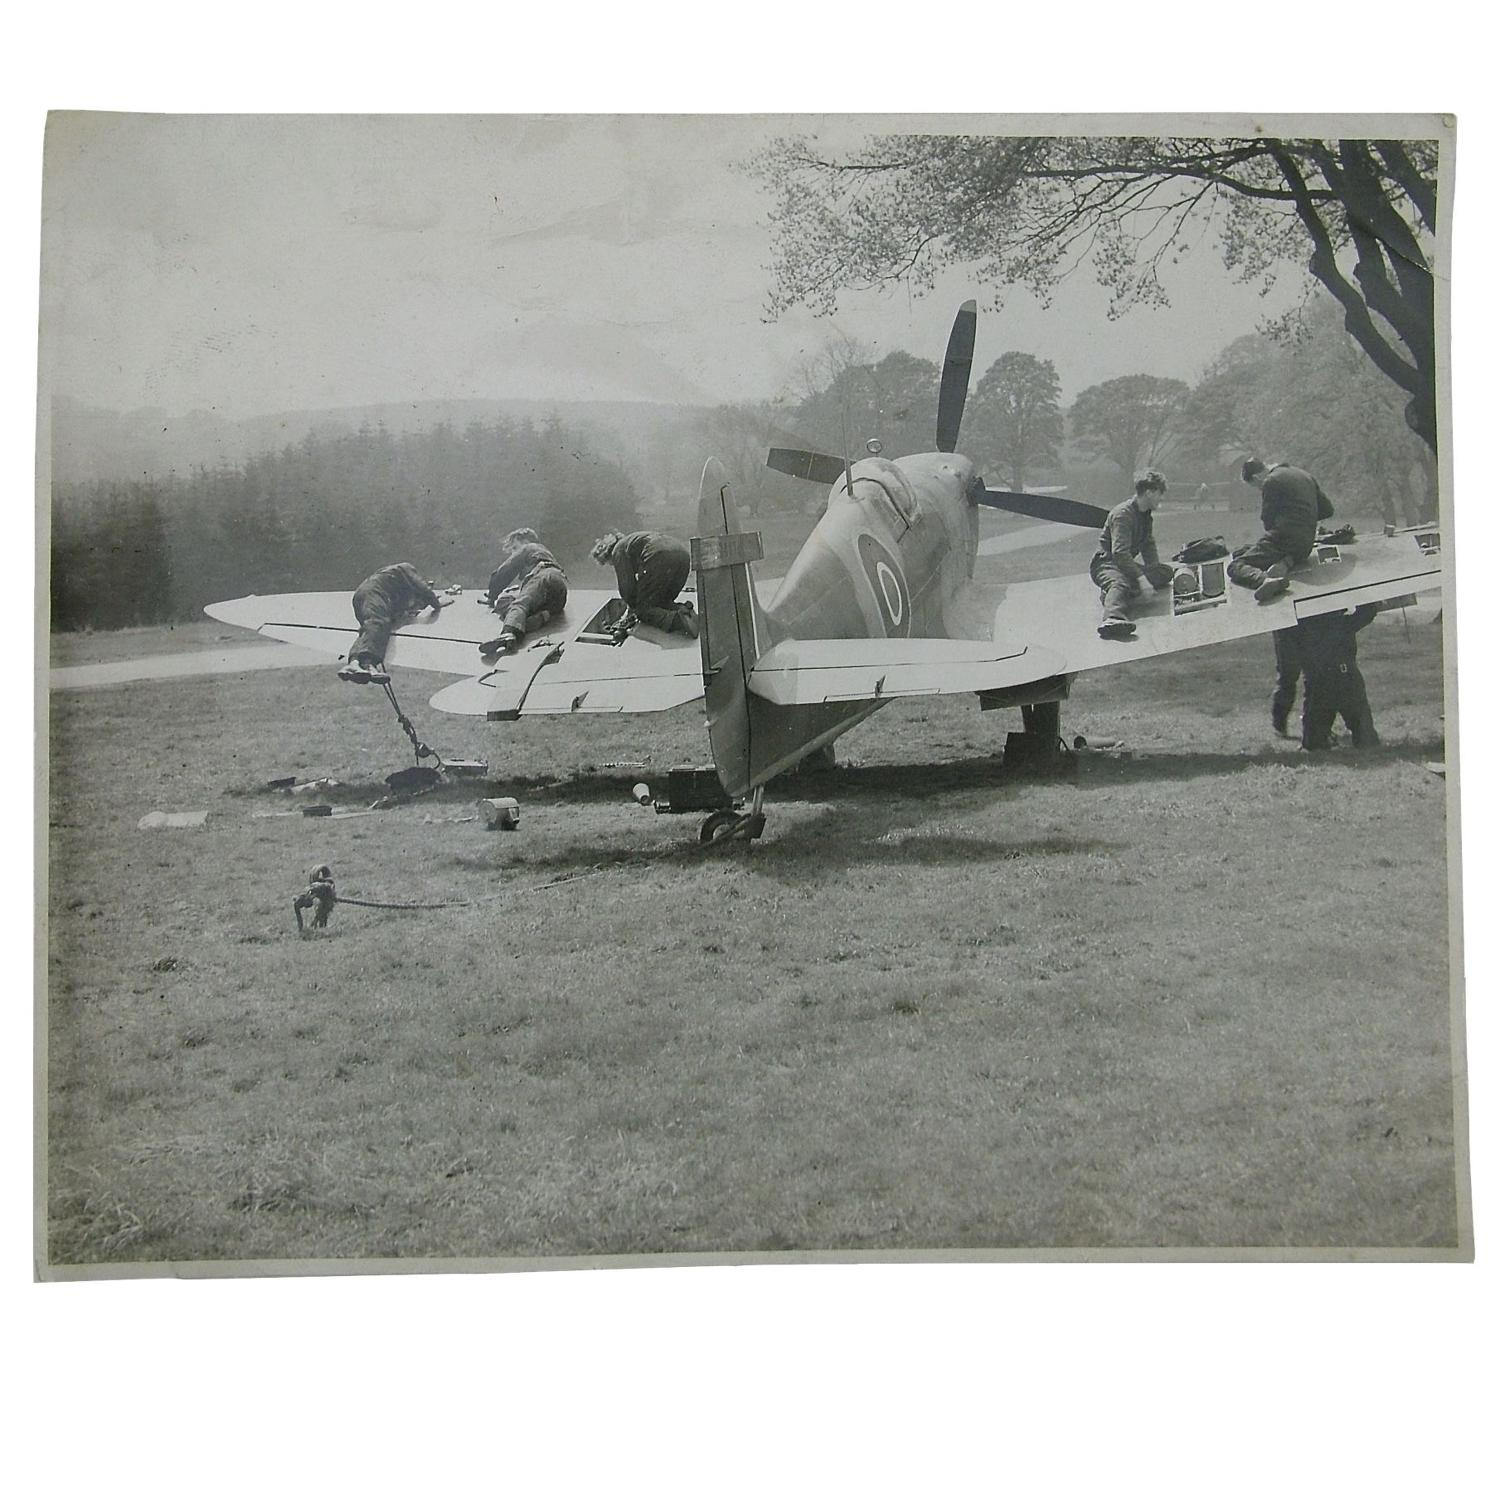 Photograph - Spitfire maintenance